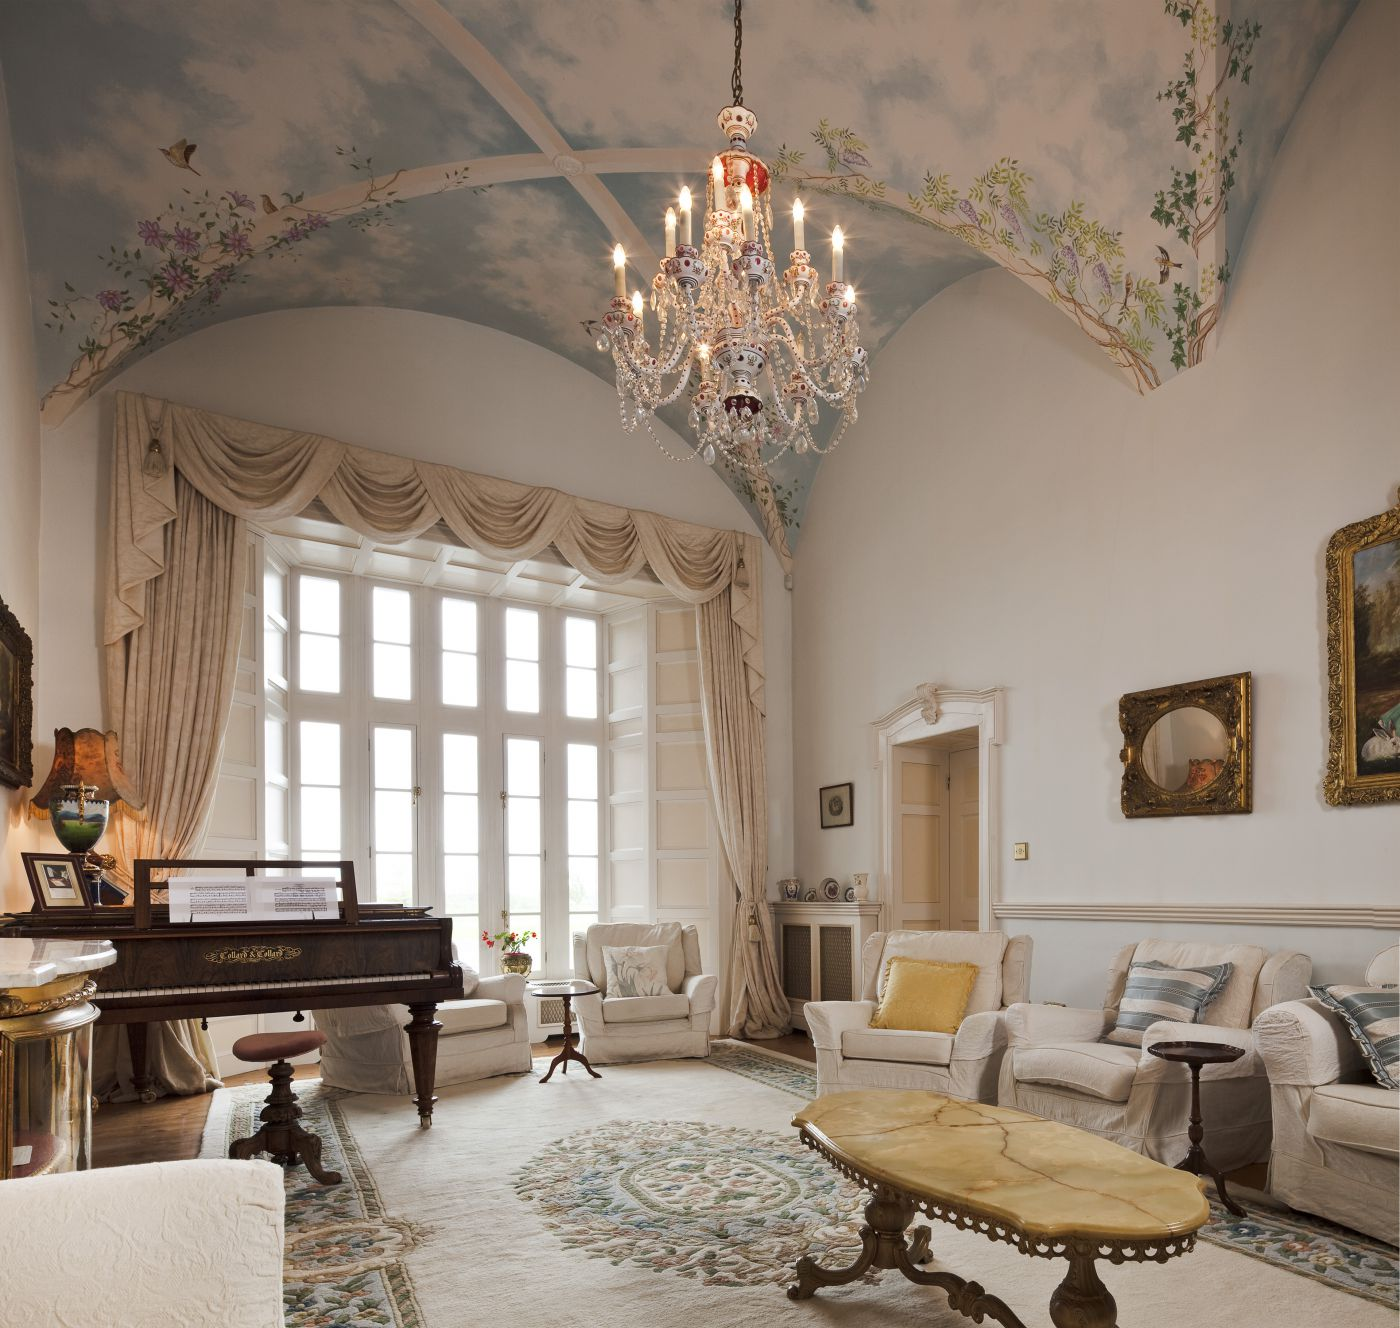 Castle Drawing Room - luxury castle accommodation Ireland | Castle Wedding Venue